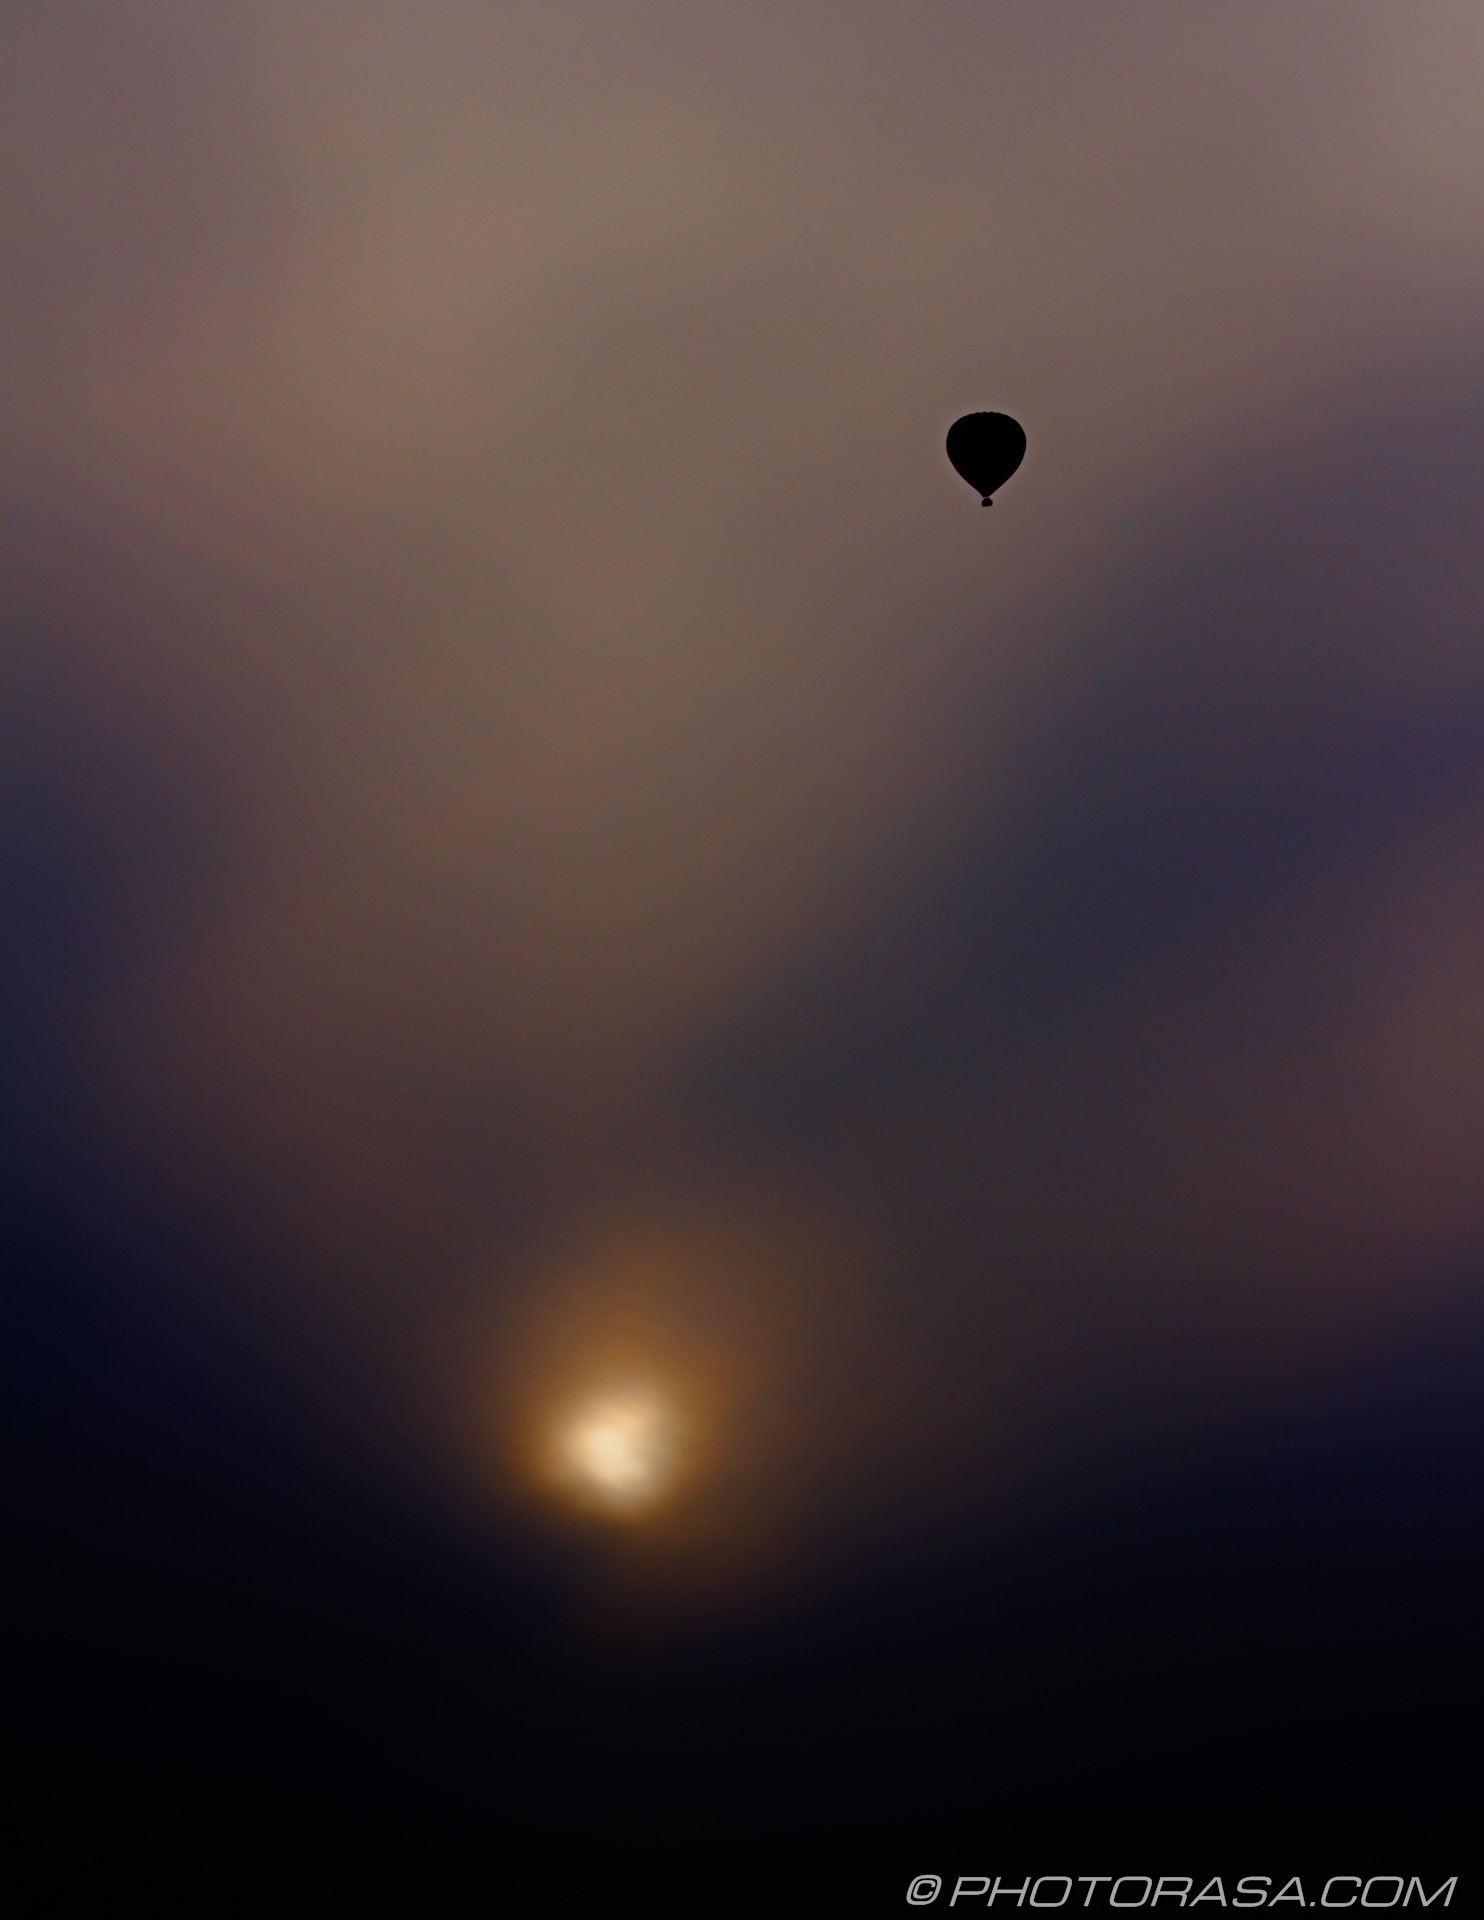 http://photorasa.com/balloons-evening-sky/hot-air-balloon-rising-above-setting-sun/